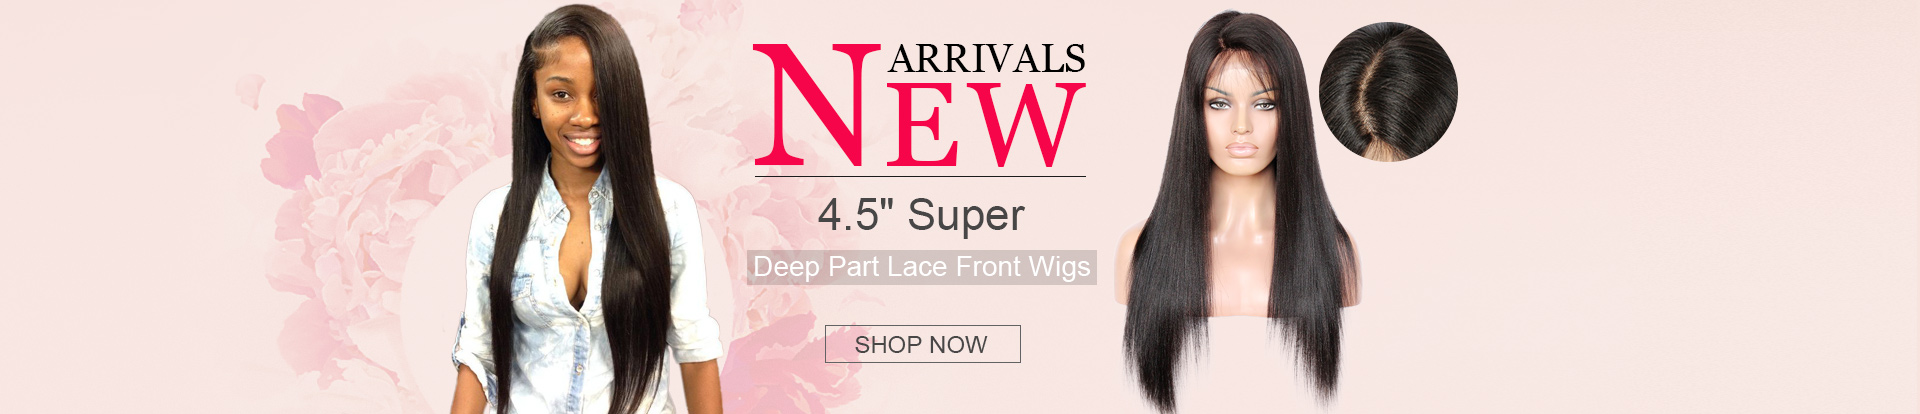 New Arrivals 4.5 Inch Super Deep Part Lace Front Wigs